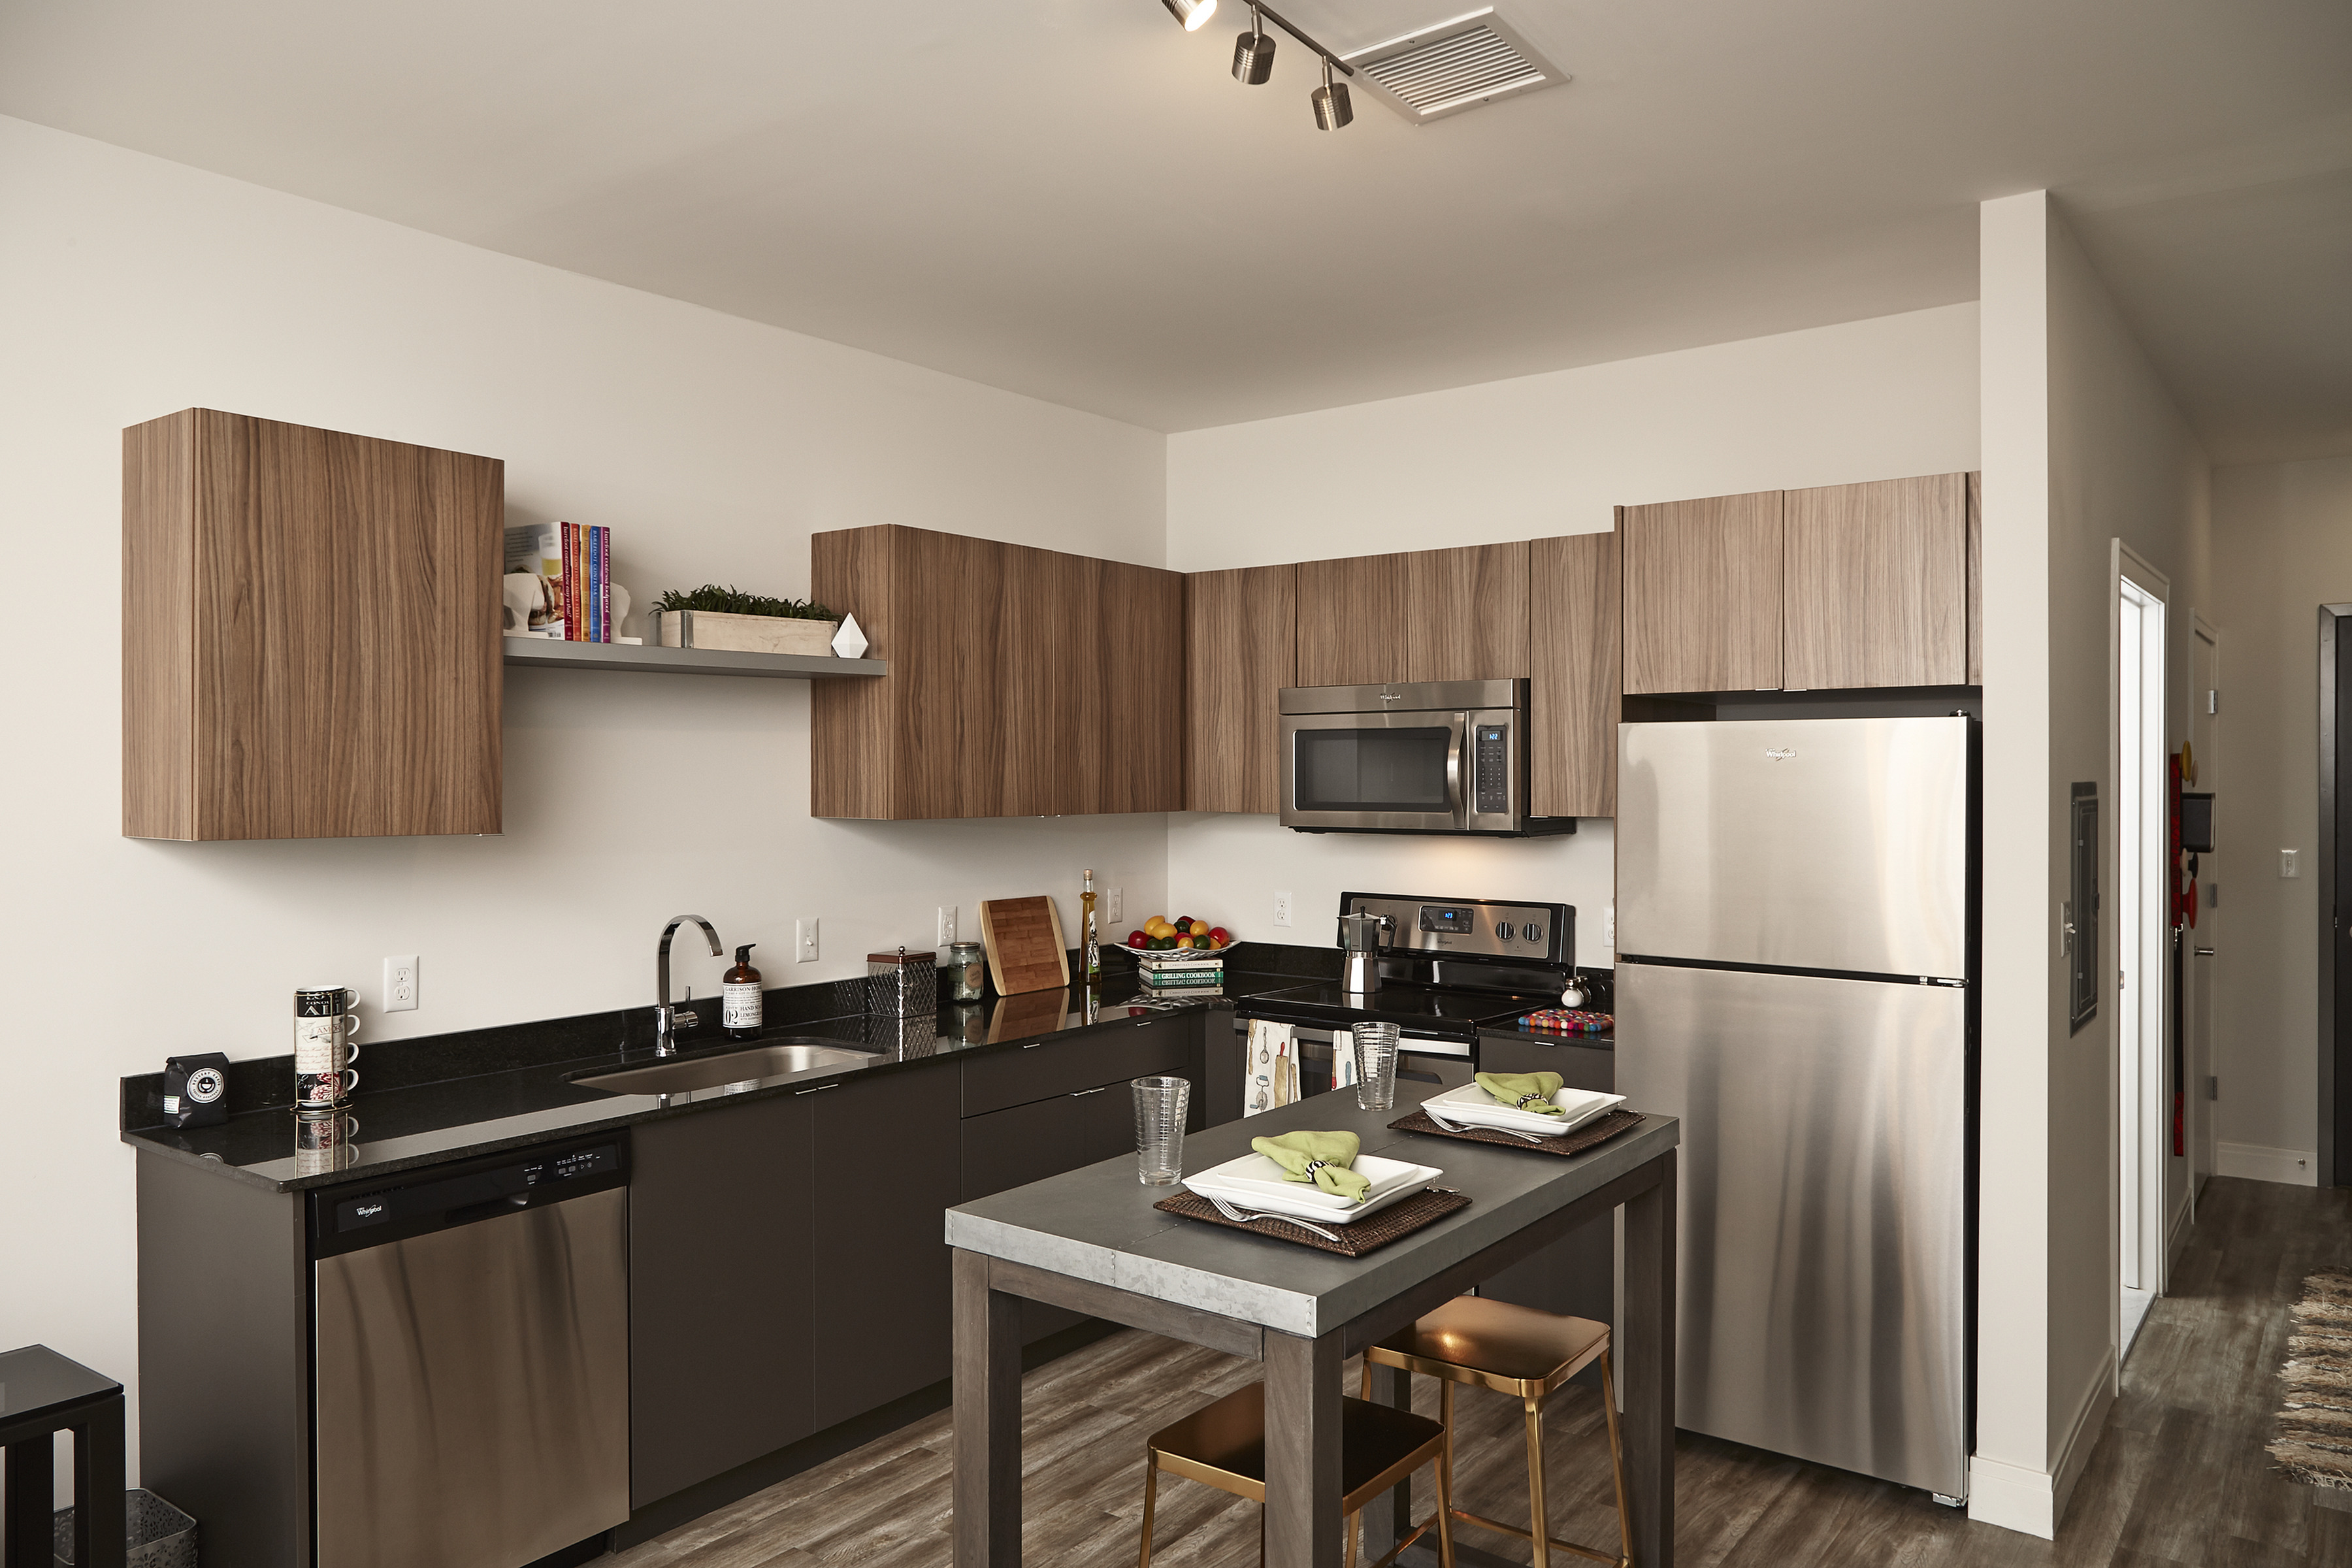 Chef-inspired kitchens complete with Granite Countertops and Stainless Steel Appliances